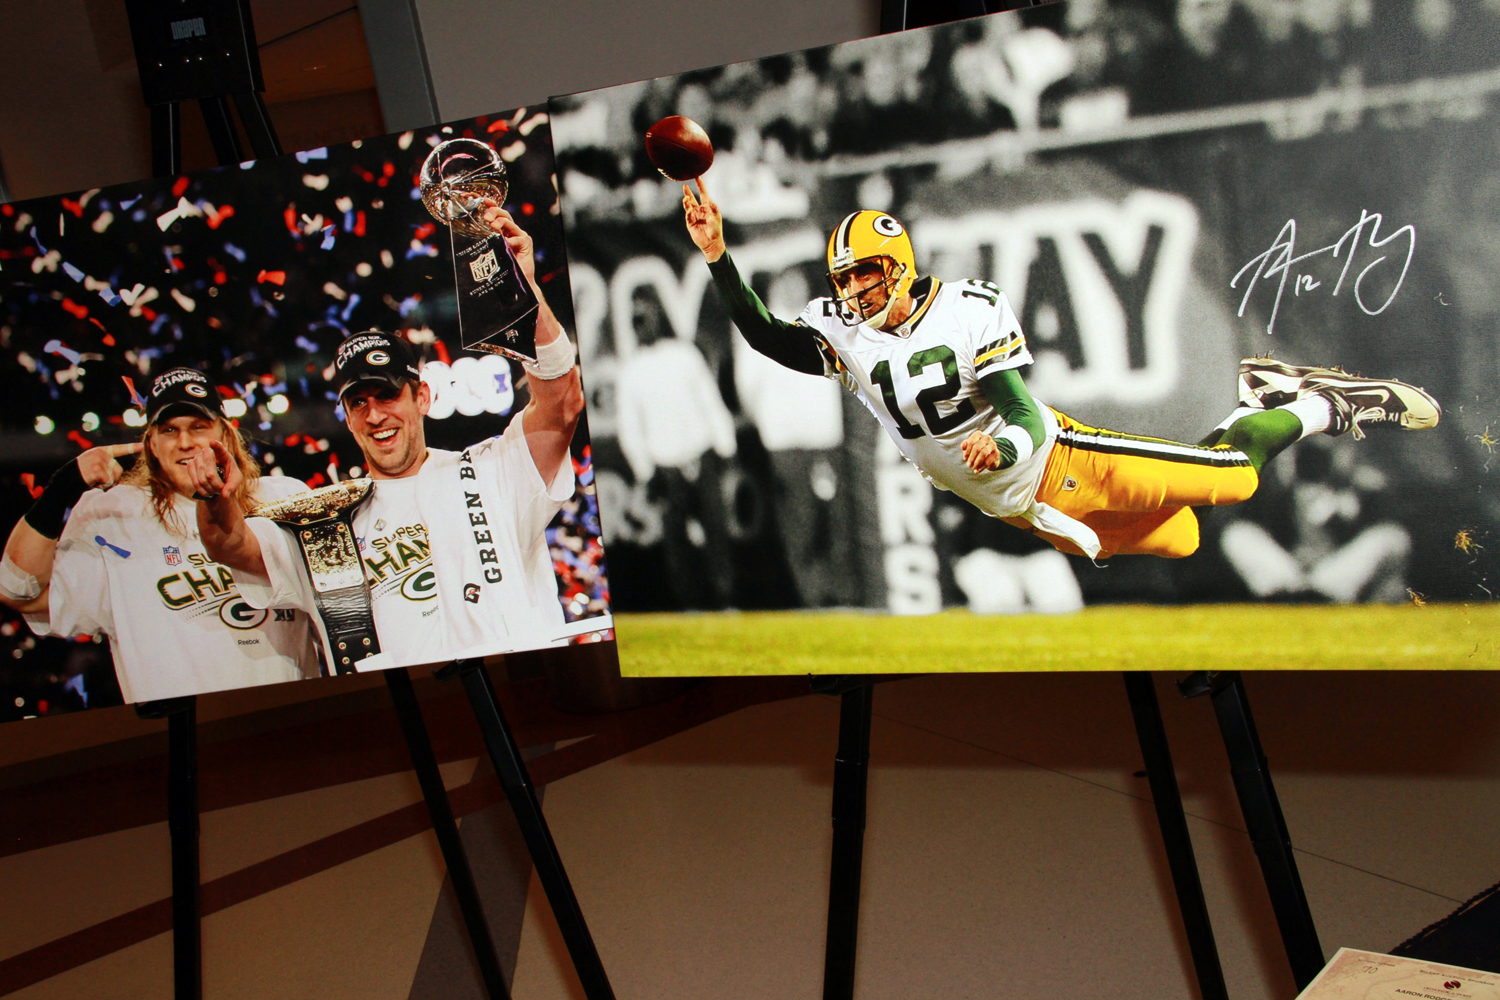 Green Bay Packers memorabilia are always popular silent auction items at Vintage in the Valley. (2011)